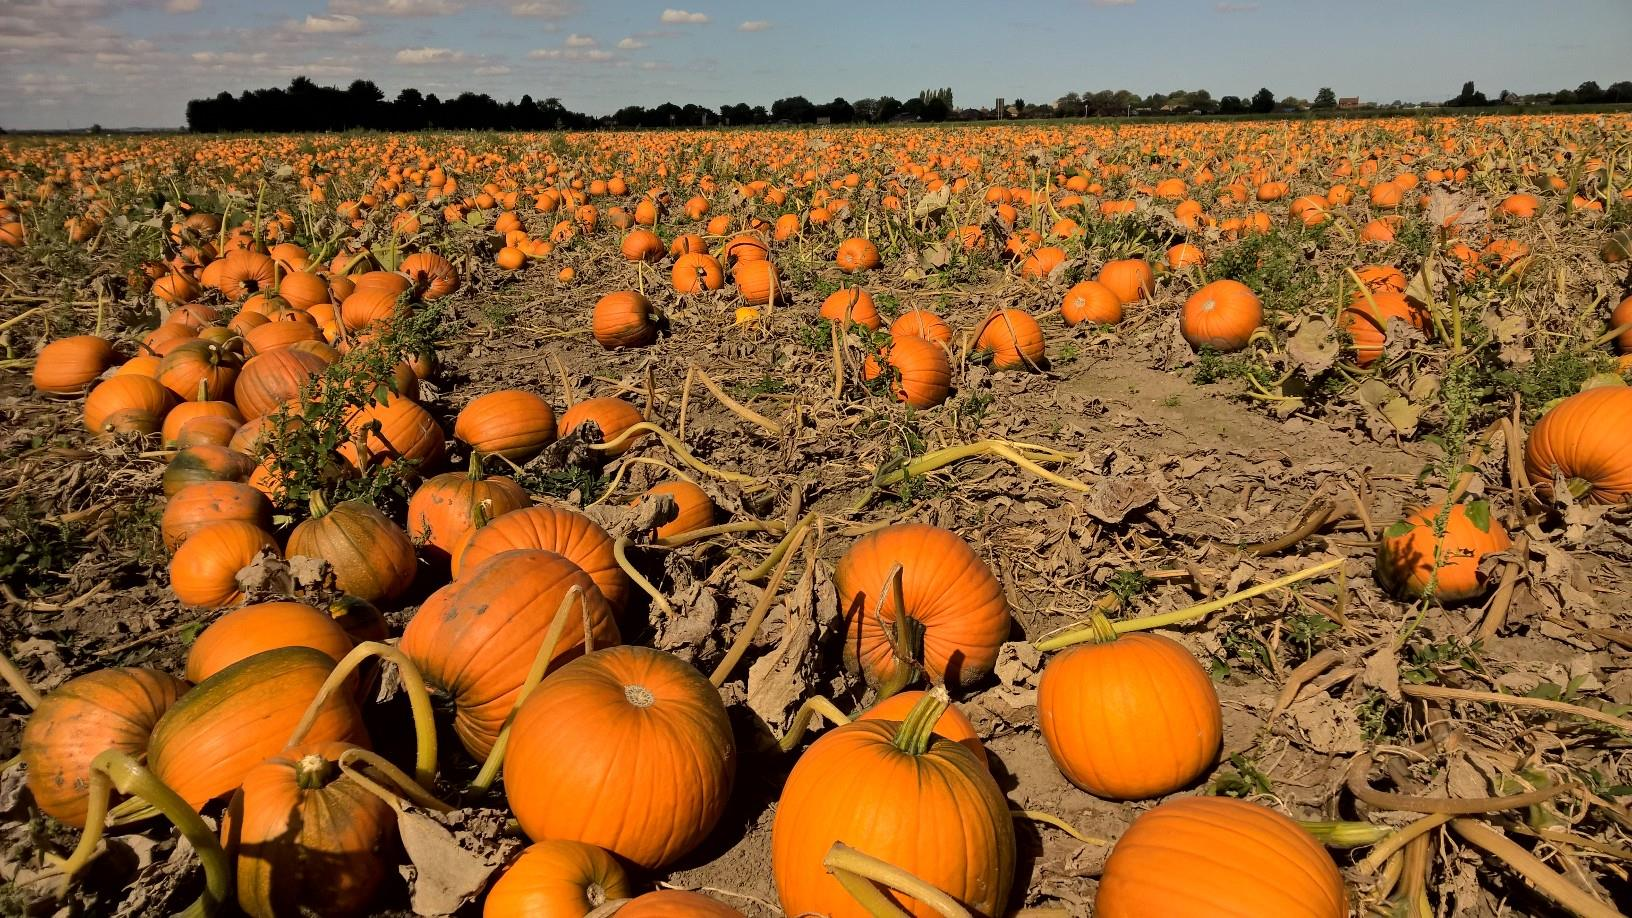 Meet the pumpkin farmers